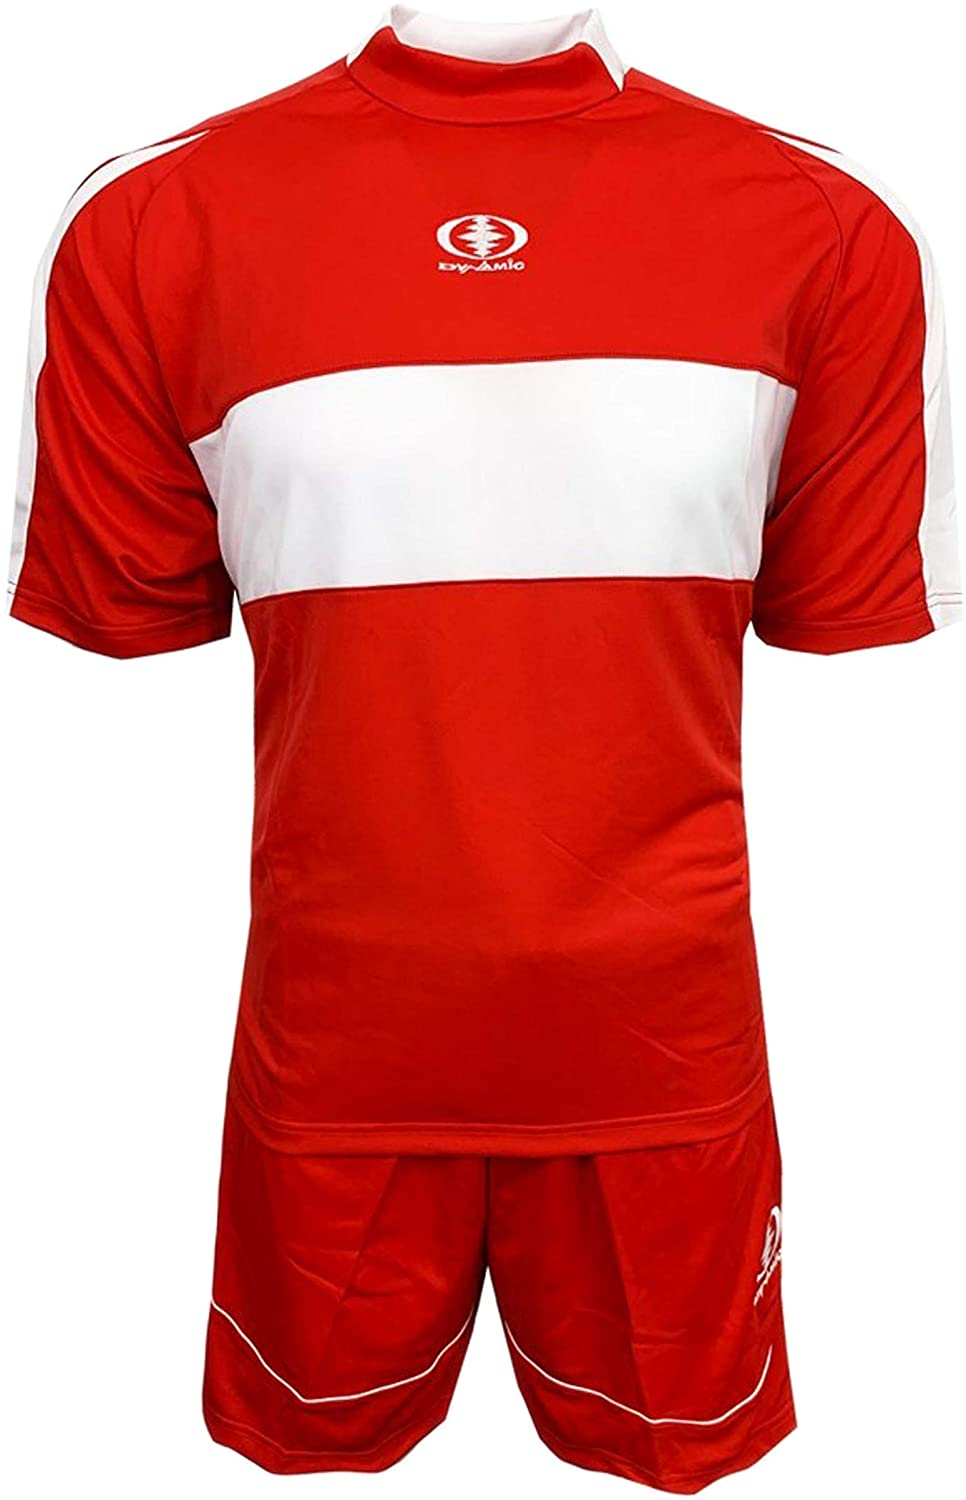 Soccer Uniforms for Teams, Short and Jersey, Two Styles Red and Blue